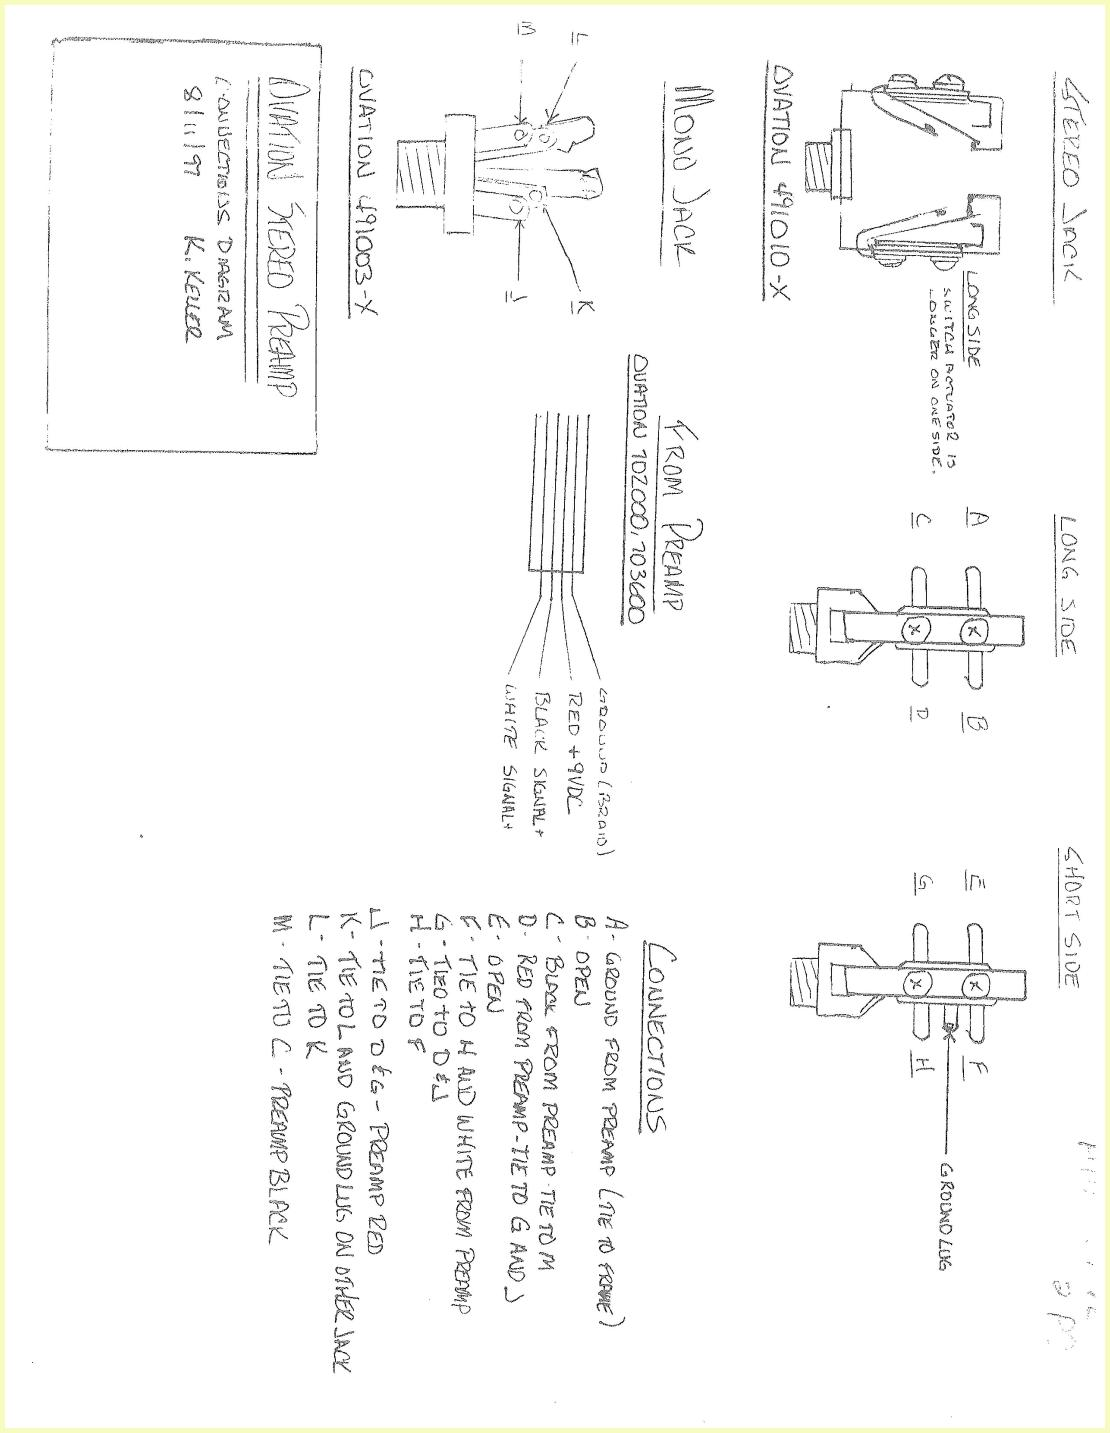 Stereo Headphone Jack Schematic